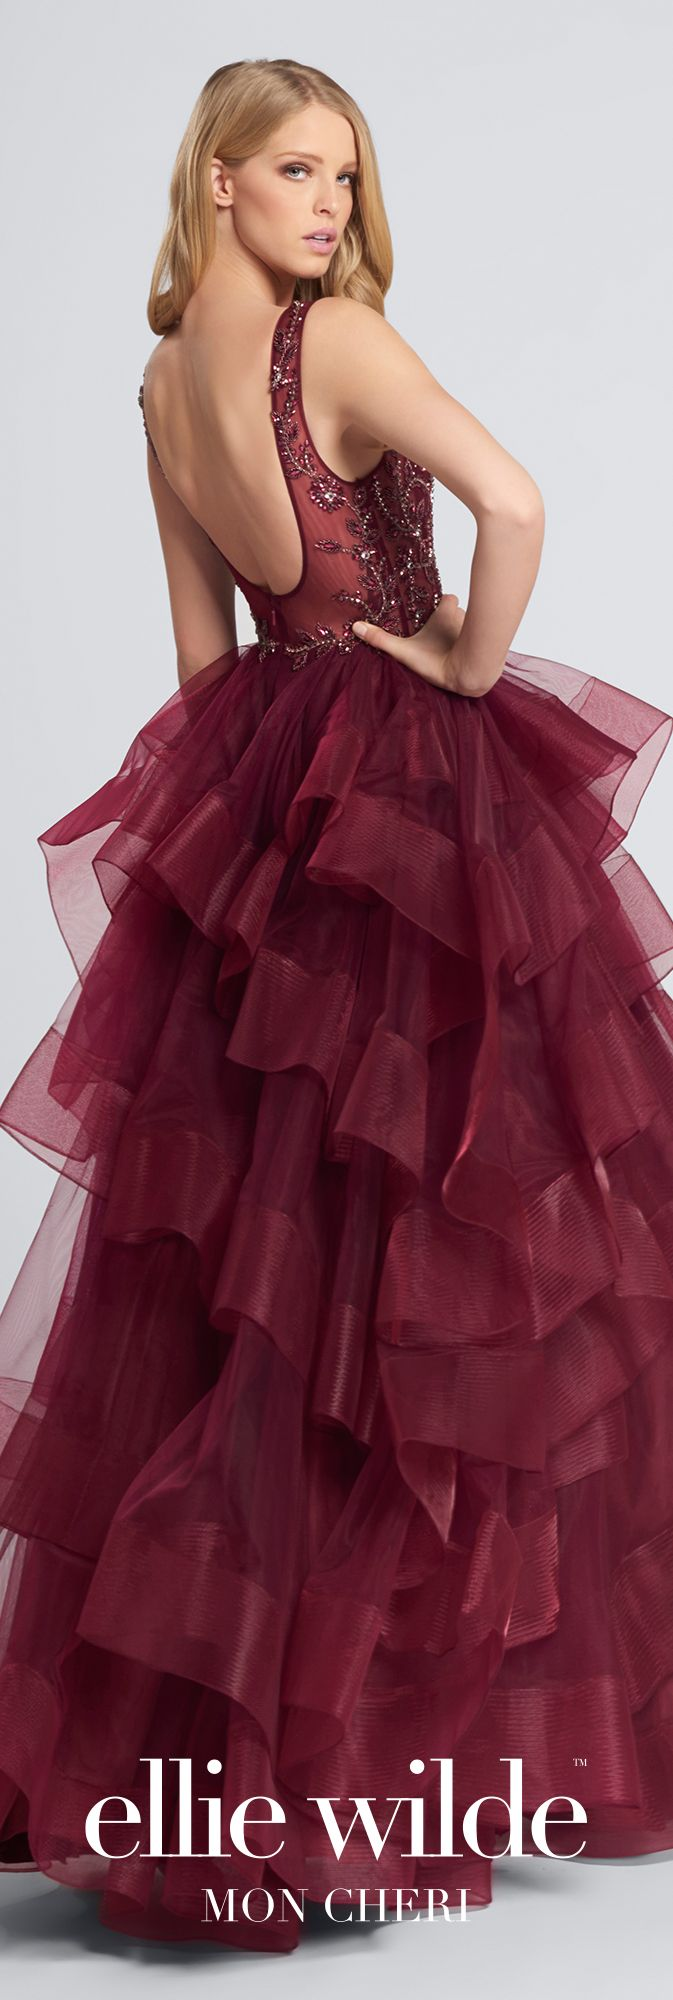 Tulle ball gown prom dress ellie wilde ew ball gown prom